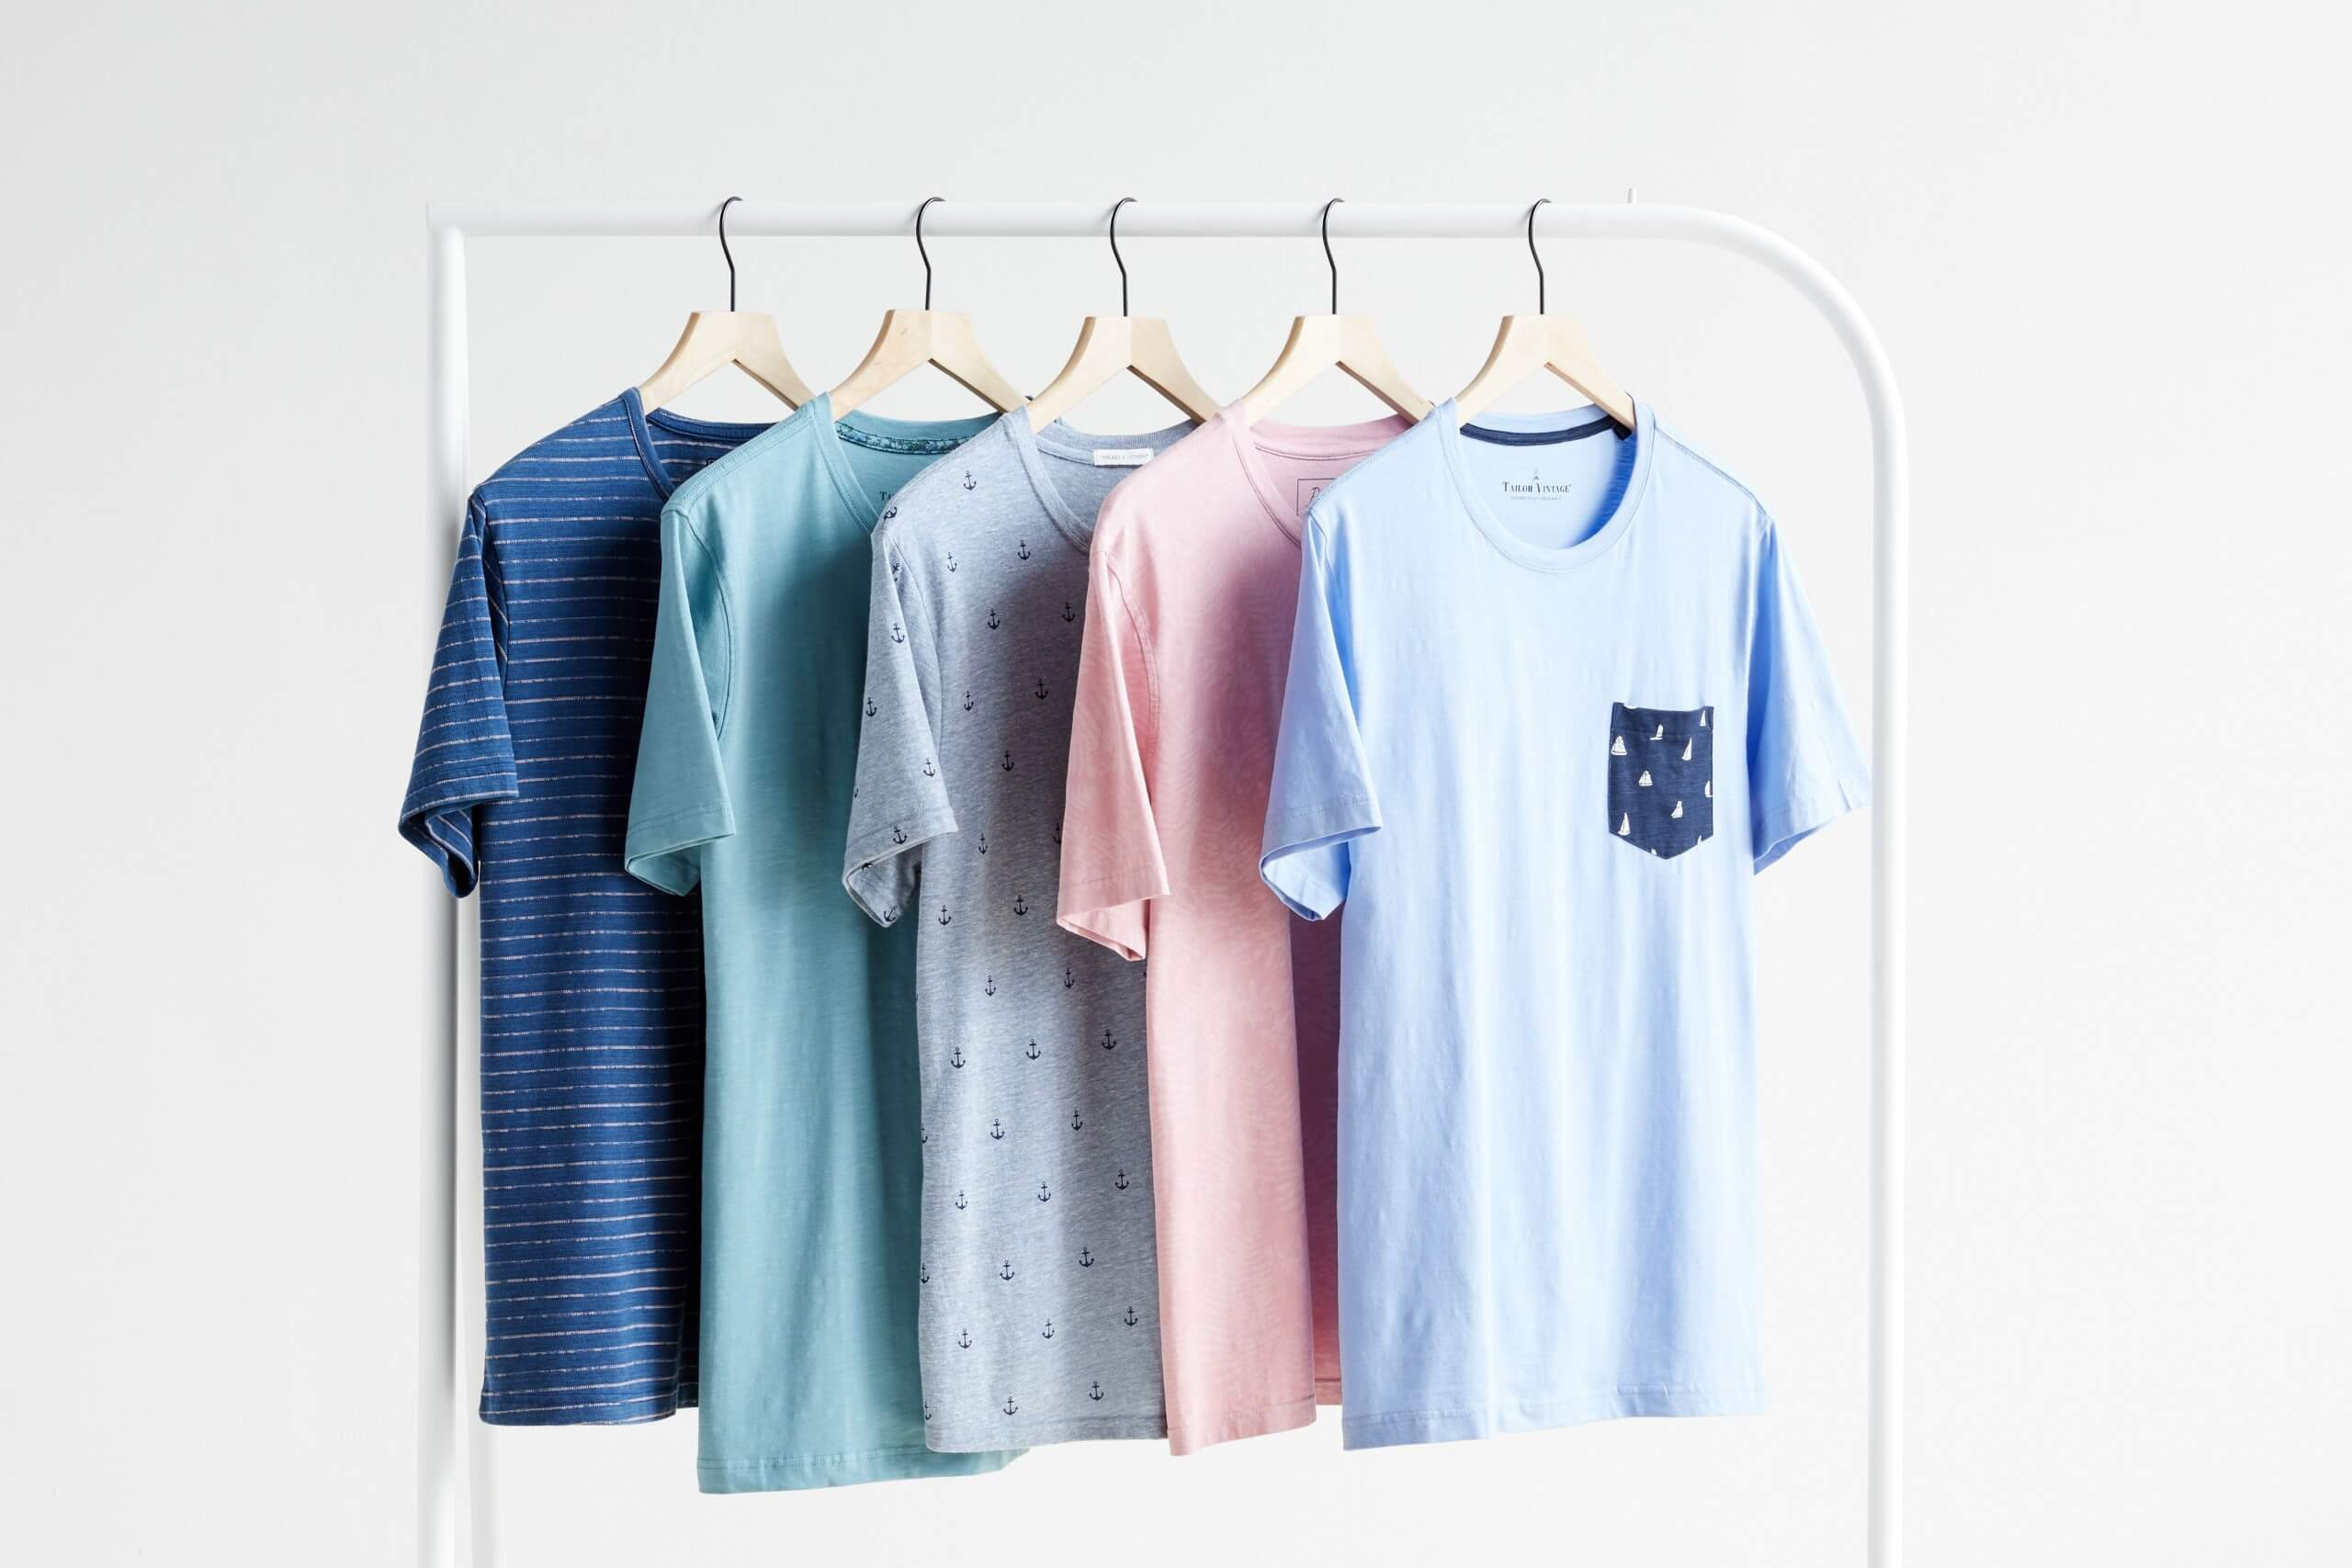 Stitch Fix Men's baby blue crew neck t-shirt, pink crew neck t-shirt, baby blue anchor print crew neck t-shirt, teal crew neck t-shirt and blue striped crew neck t-shirt hanging on white rack.